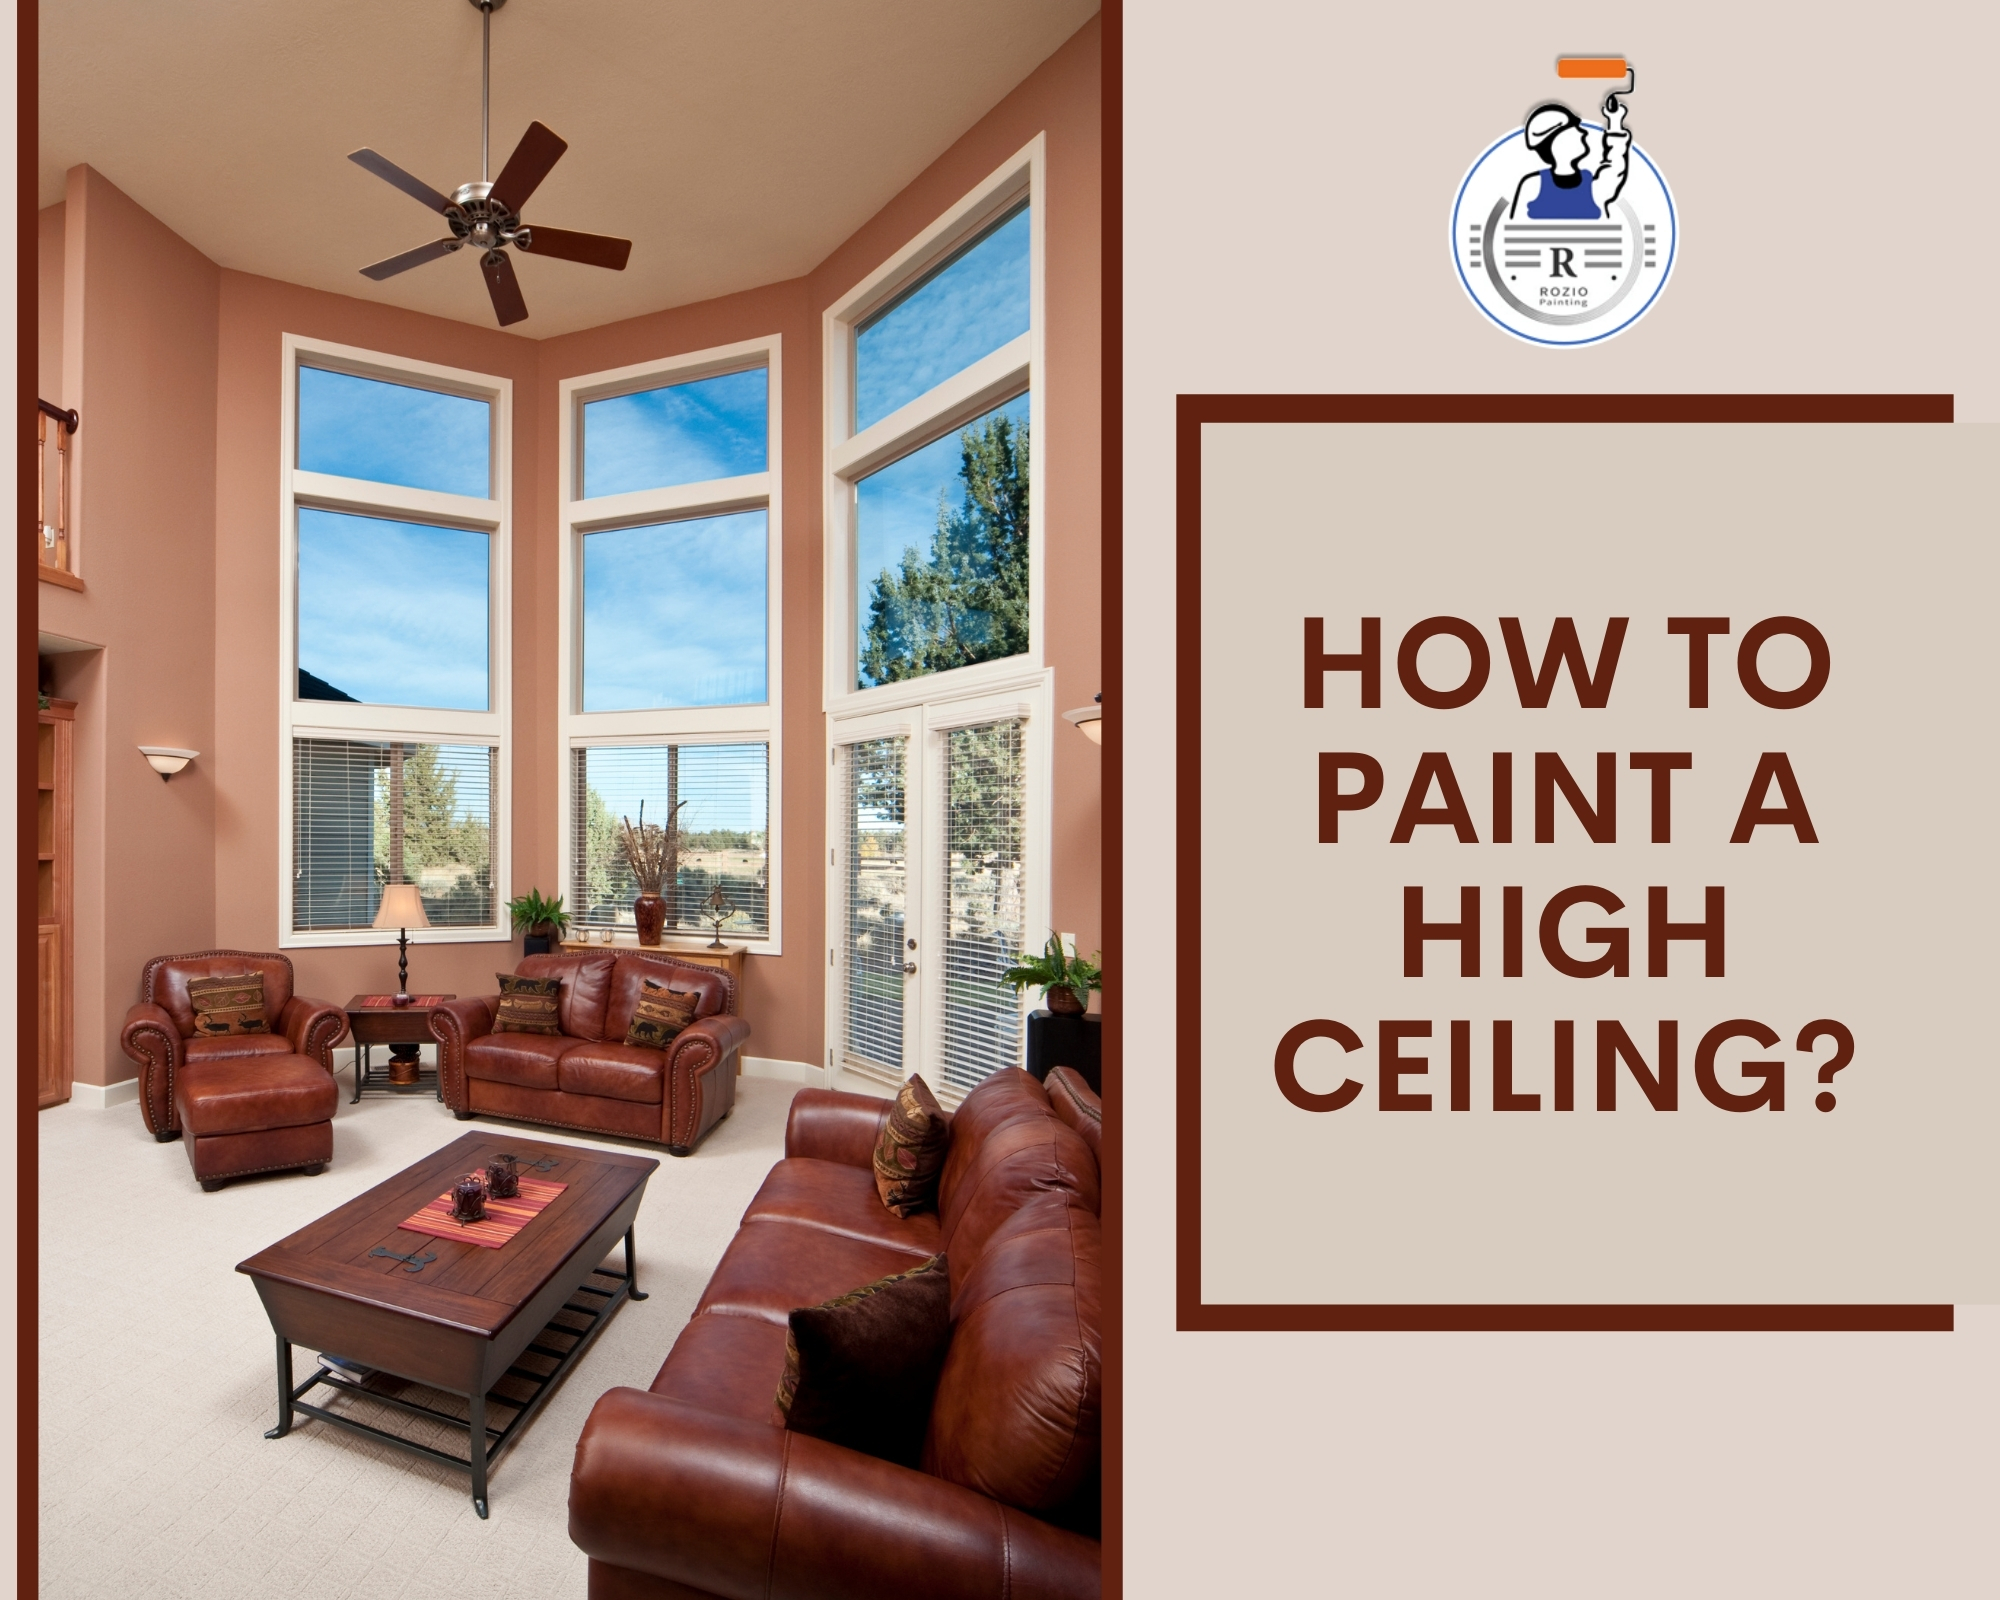 How to paint a high ceiling